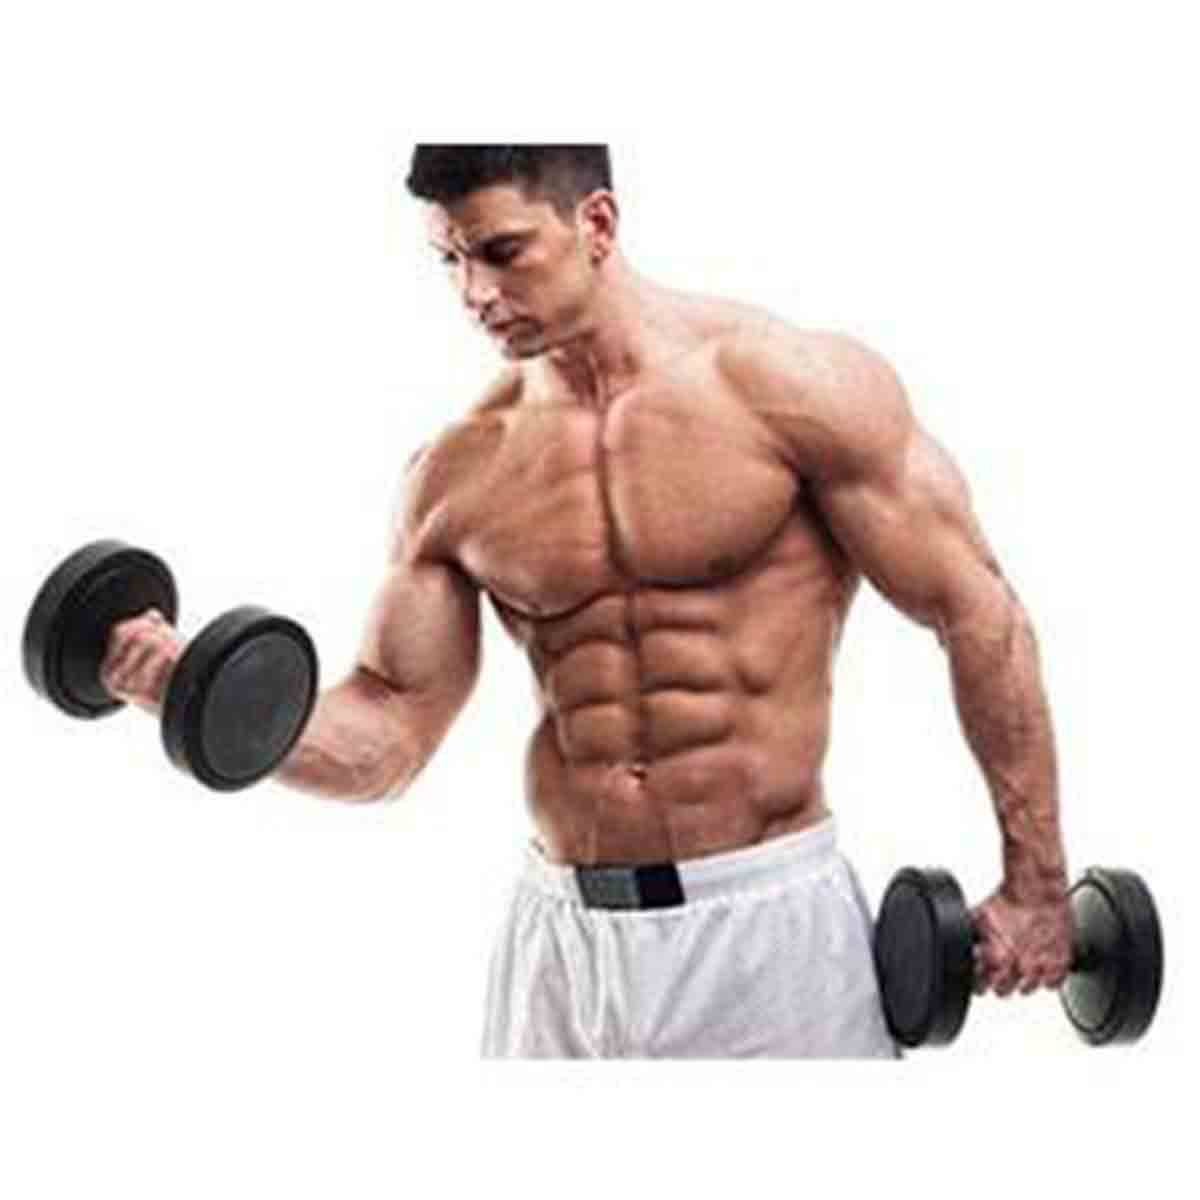 10 Tips to Help Skinny Guys Build Muscle